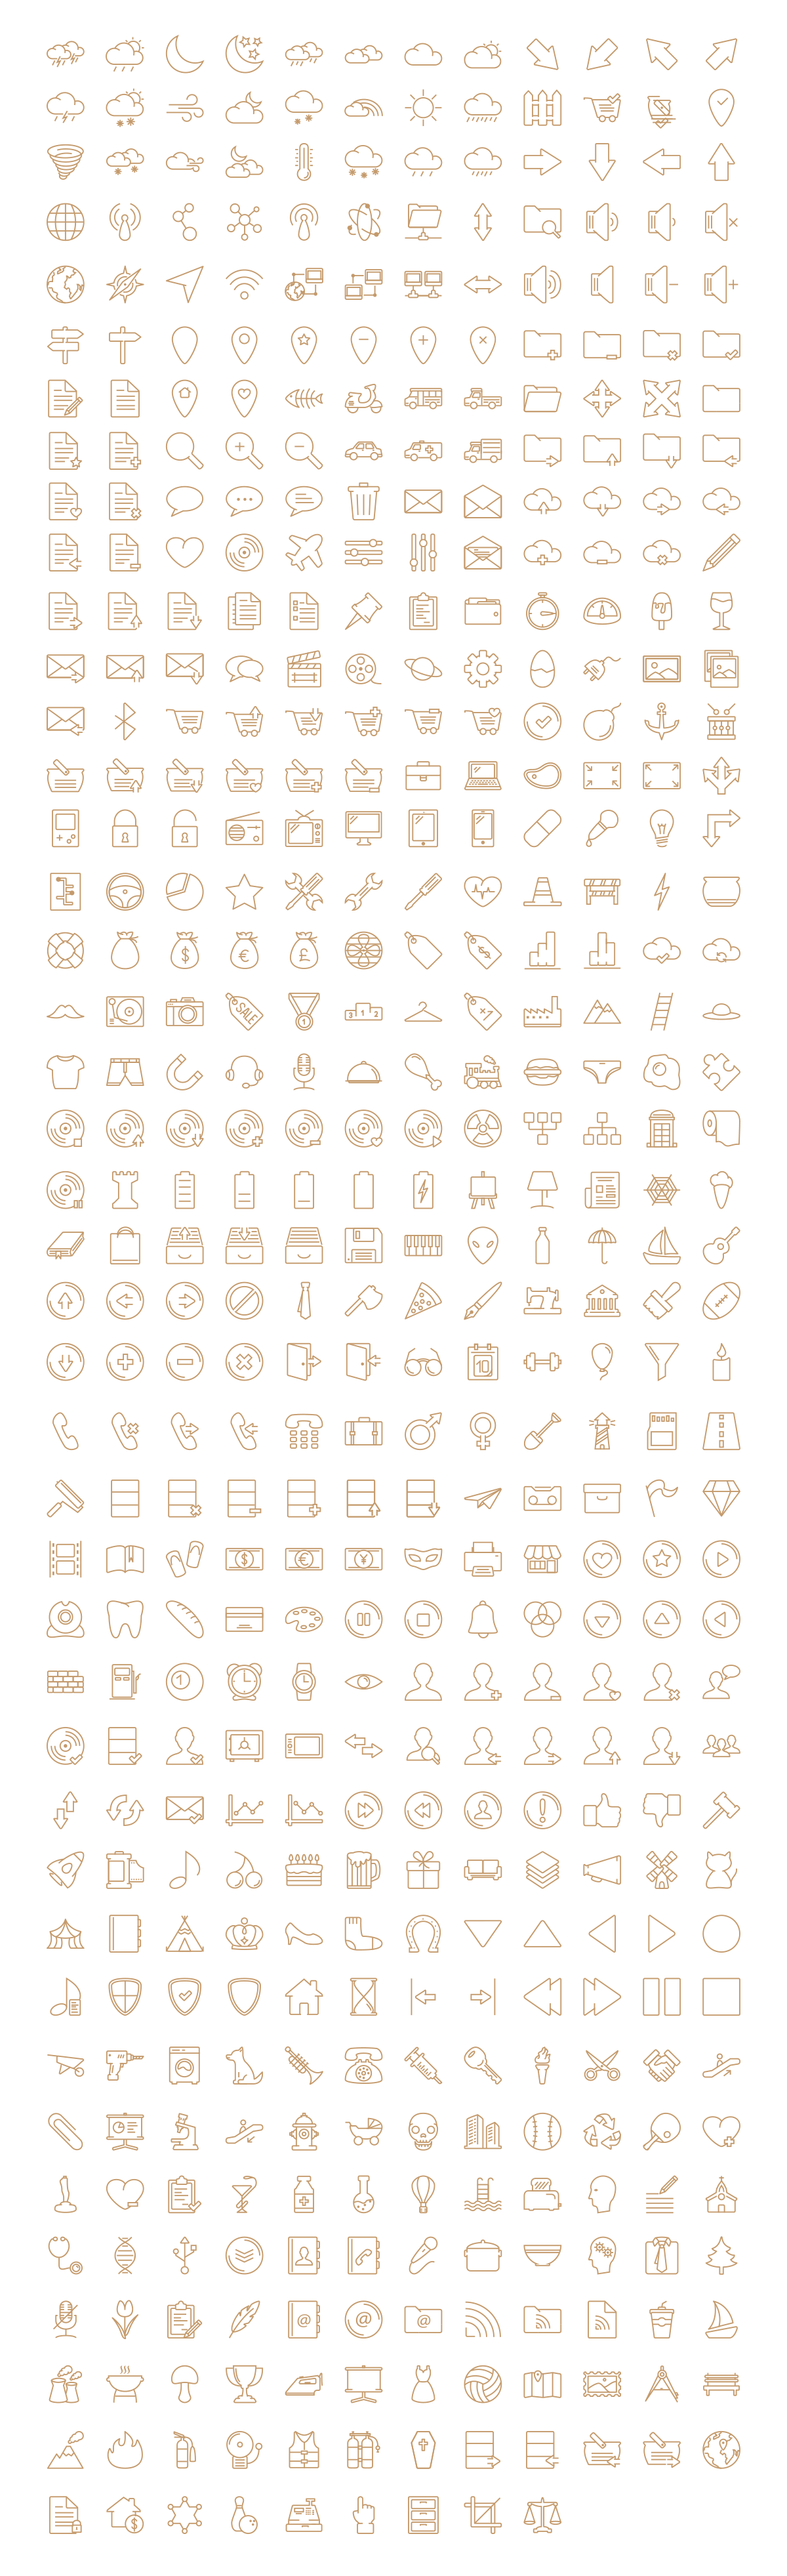 simple-outline-icons